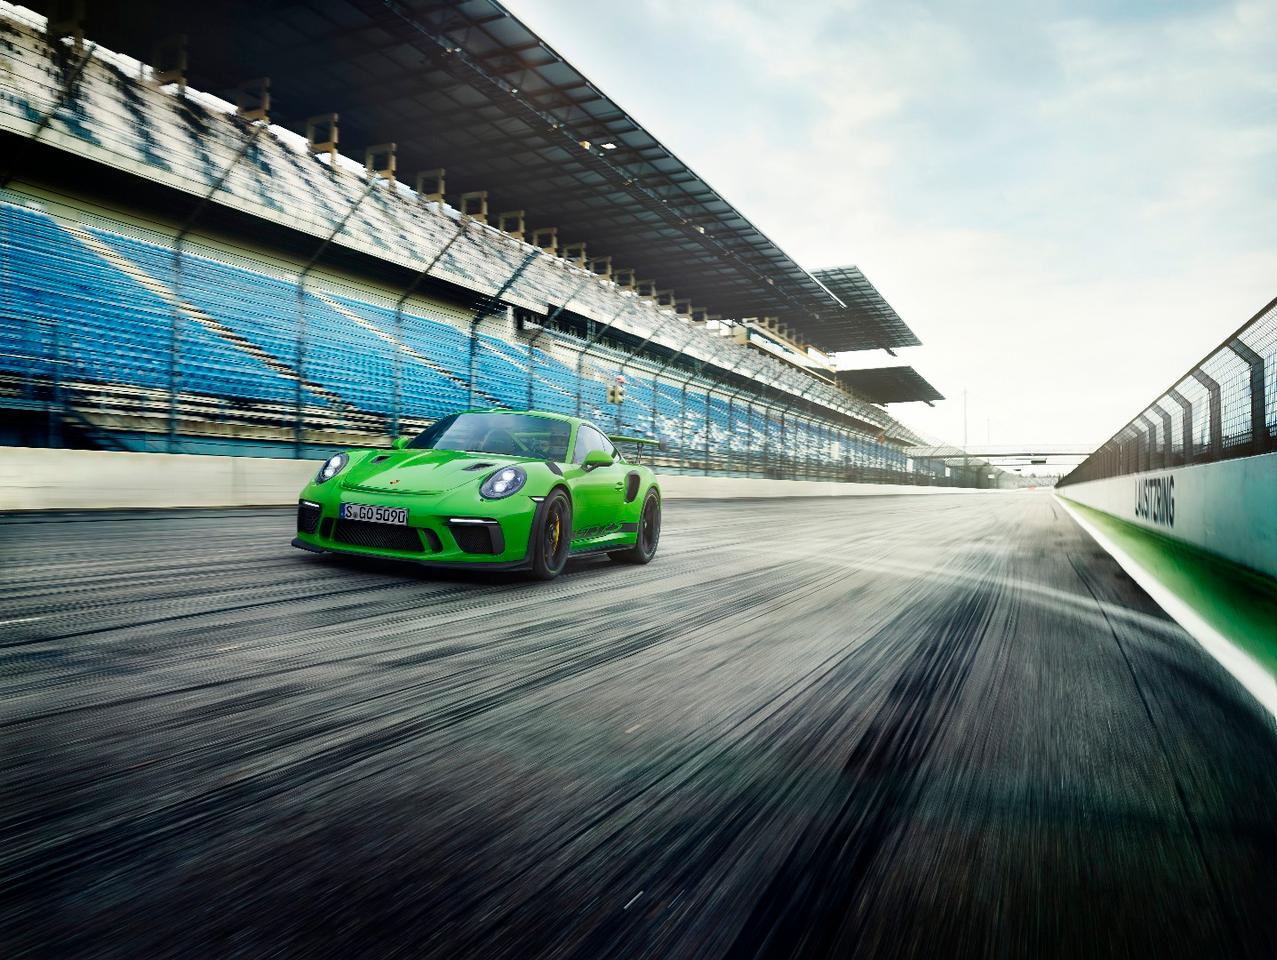 2018 Porsche 911 GT3 RS: lighter and faster, that's the recipe